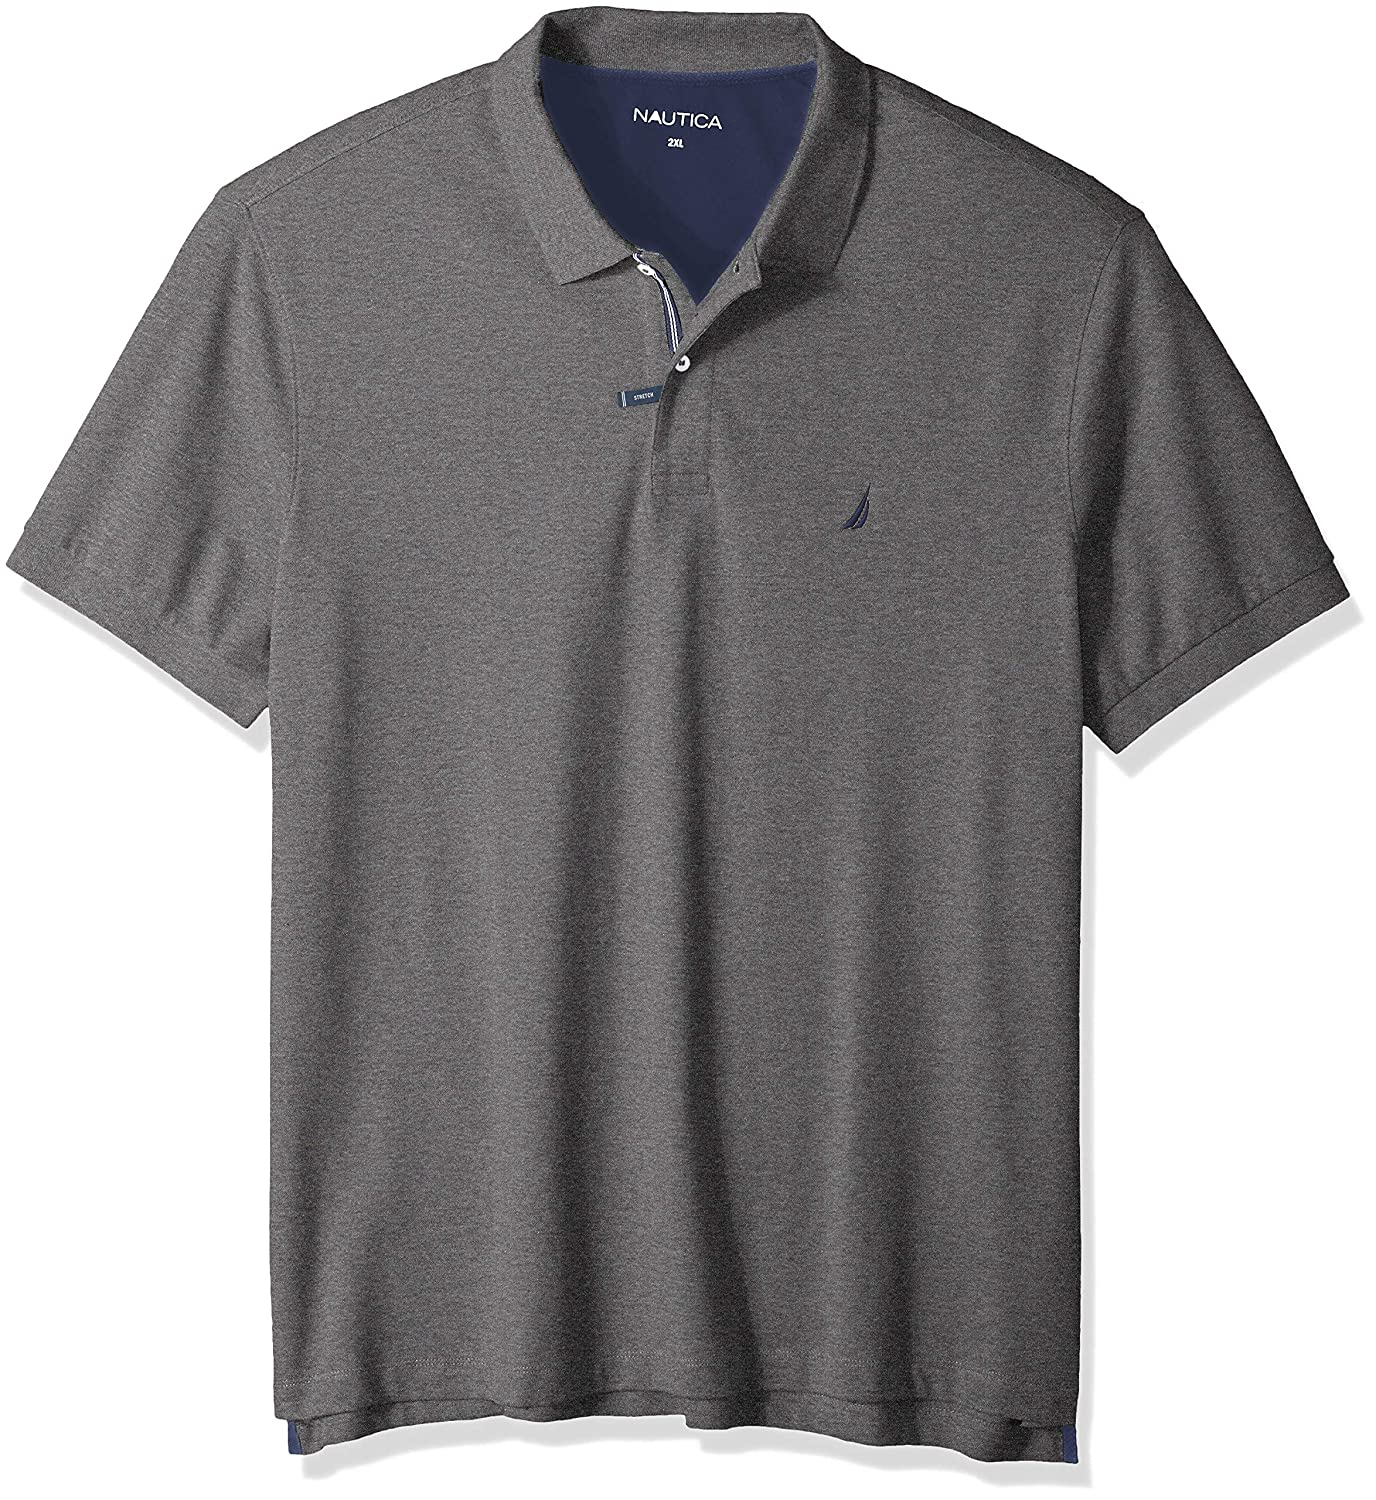 Nautica Mens Big and Tall Short Sleeve Solid Deck Polo Shirt